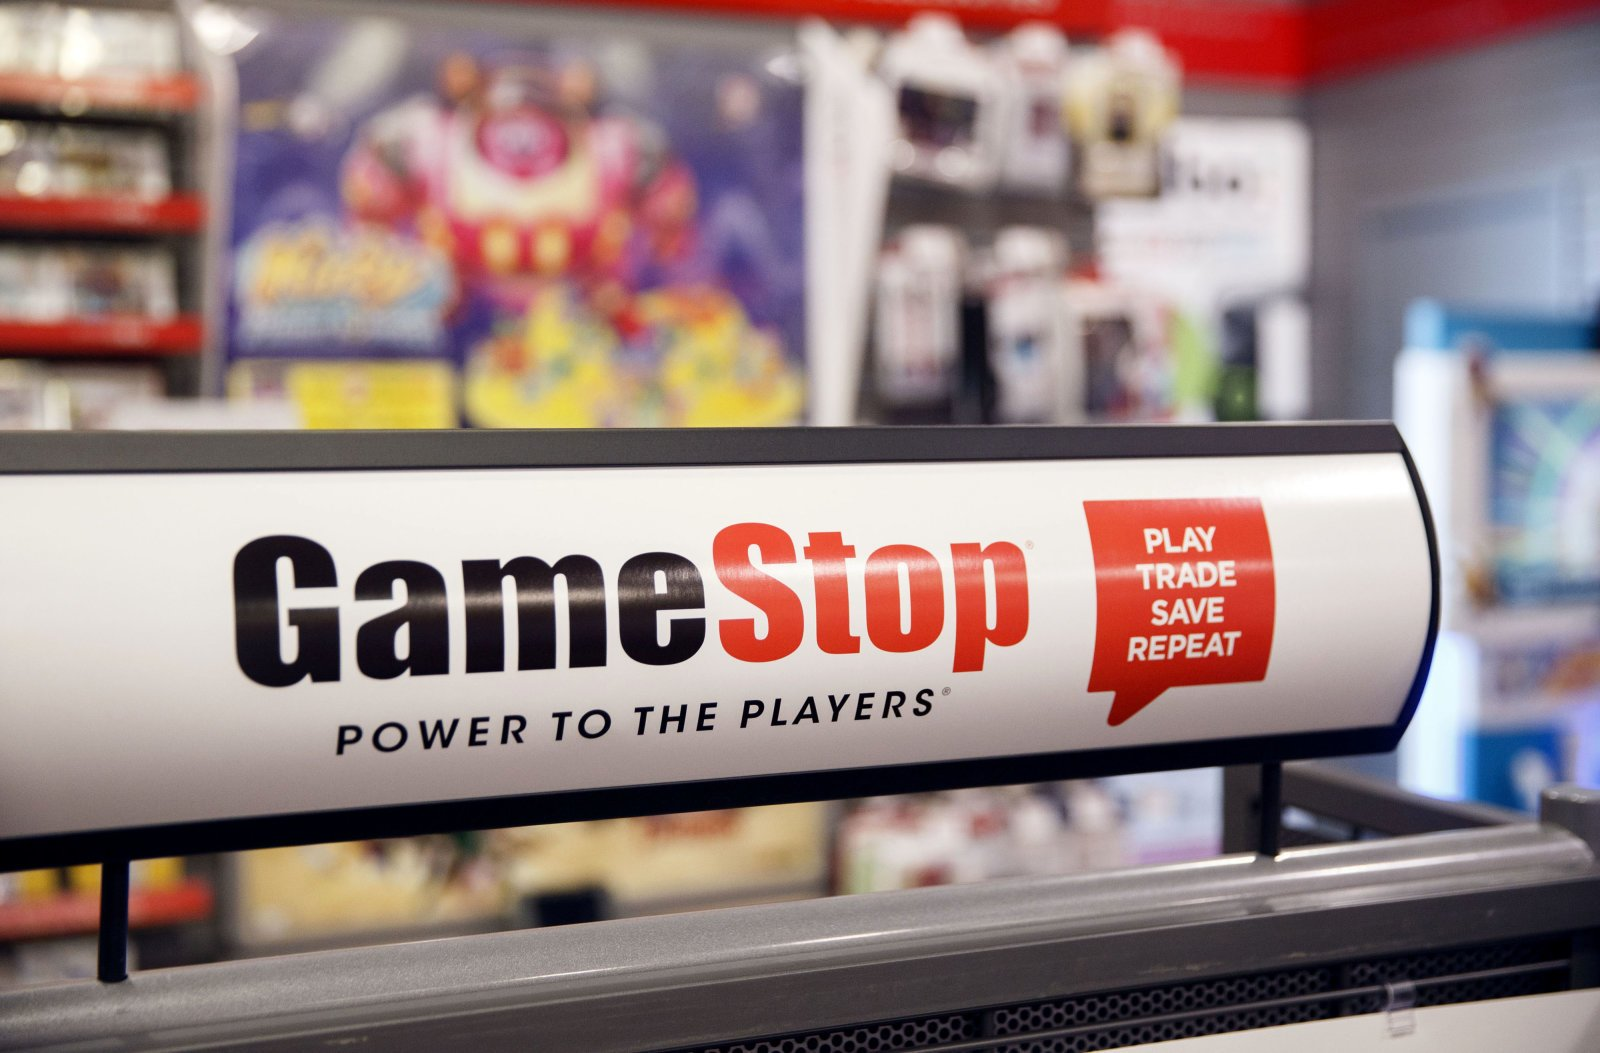 The redesign will feature things like a tablet where customers can pre-order games without having to wait for a GameStop employee.